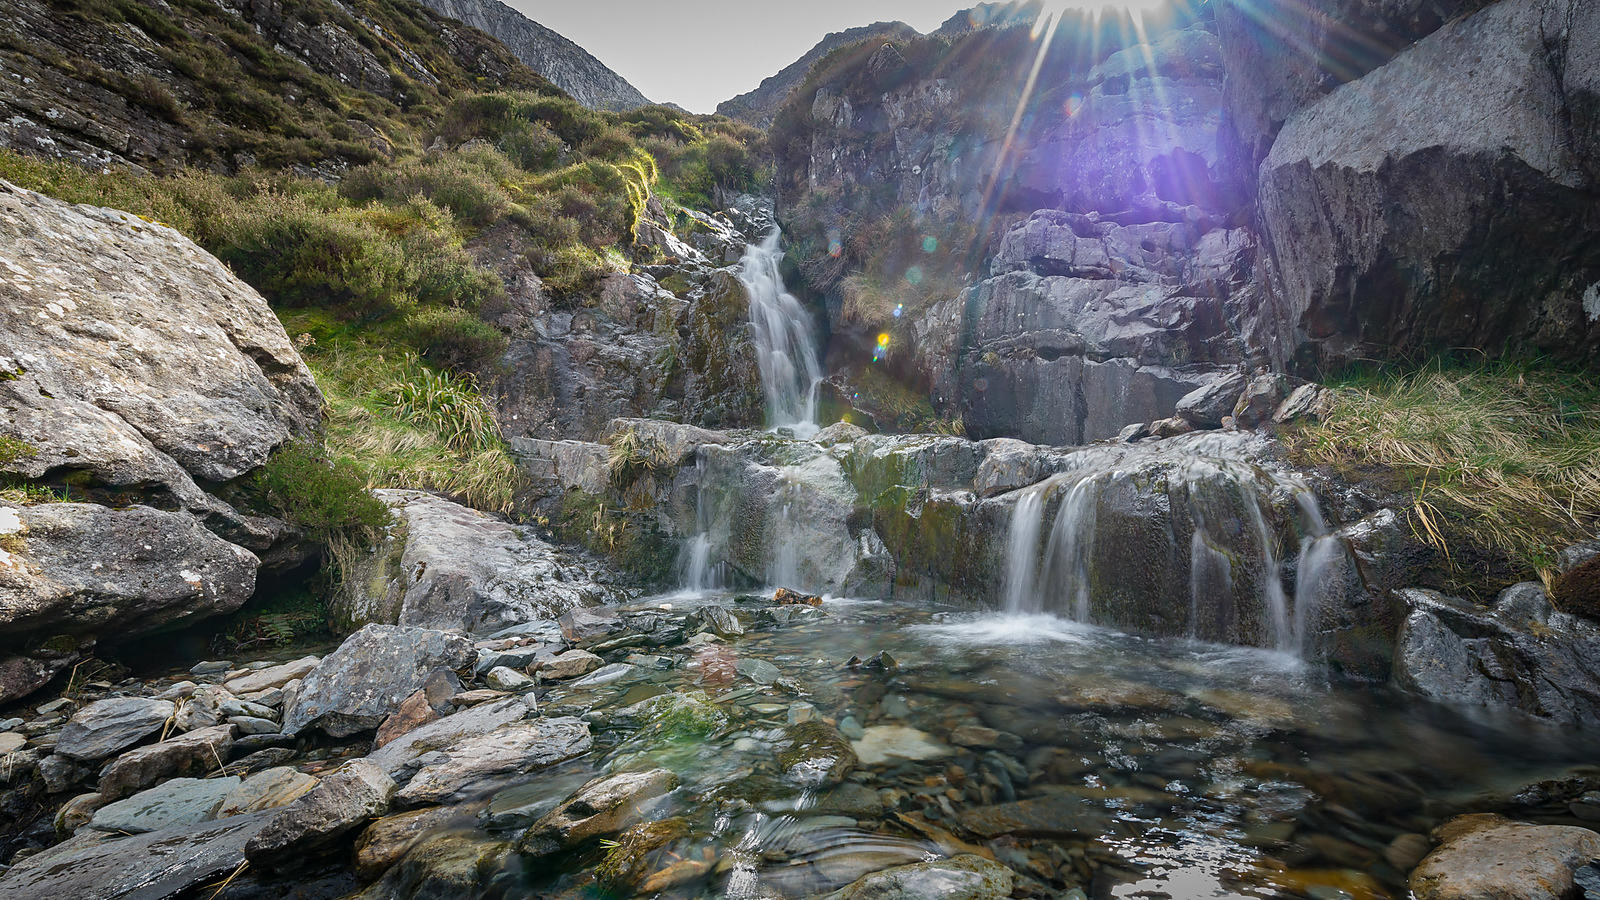 Waterfall at the Glyderau in Snowdonia